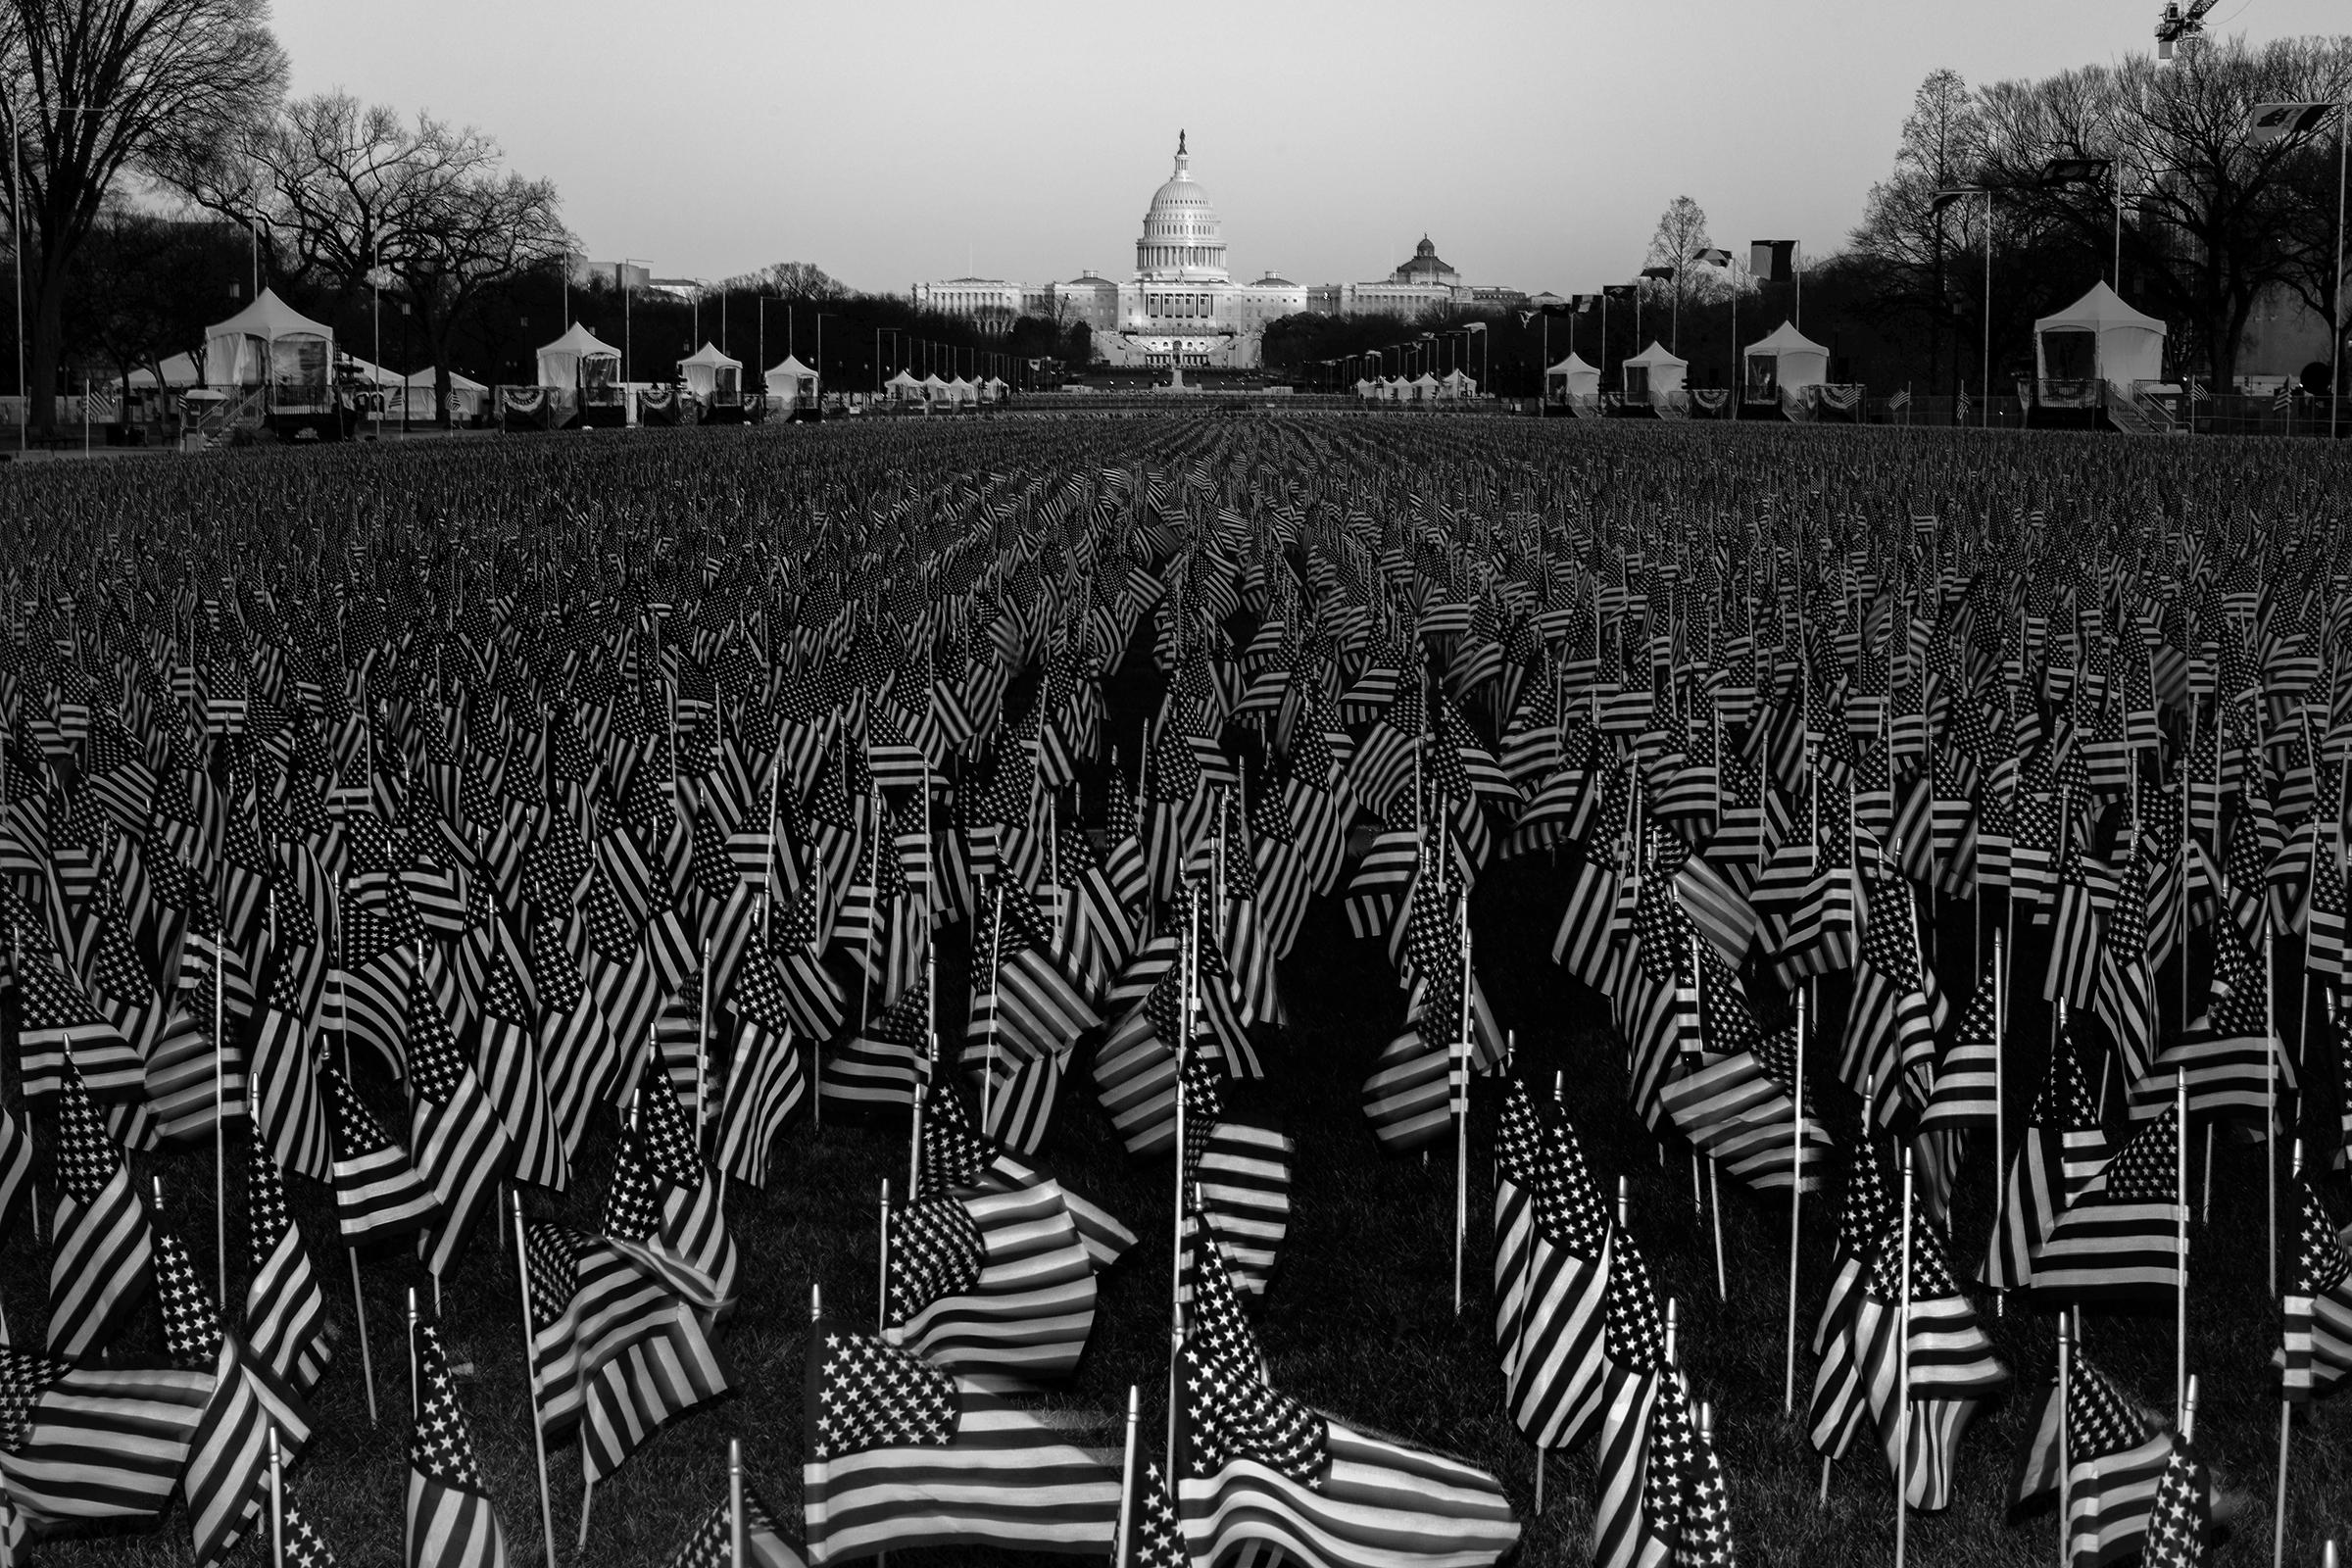 A field of flags on the National Mall in Washington, D.C., on Jan. 19, one day before the inauguration of President-elect Joe Biden and Vice President-elect Kamala Harris. The public art display features nearly 200,000 flags, representing Americans who would have gathered for the inauguration, according to the organizing committee.